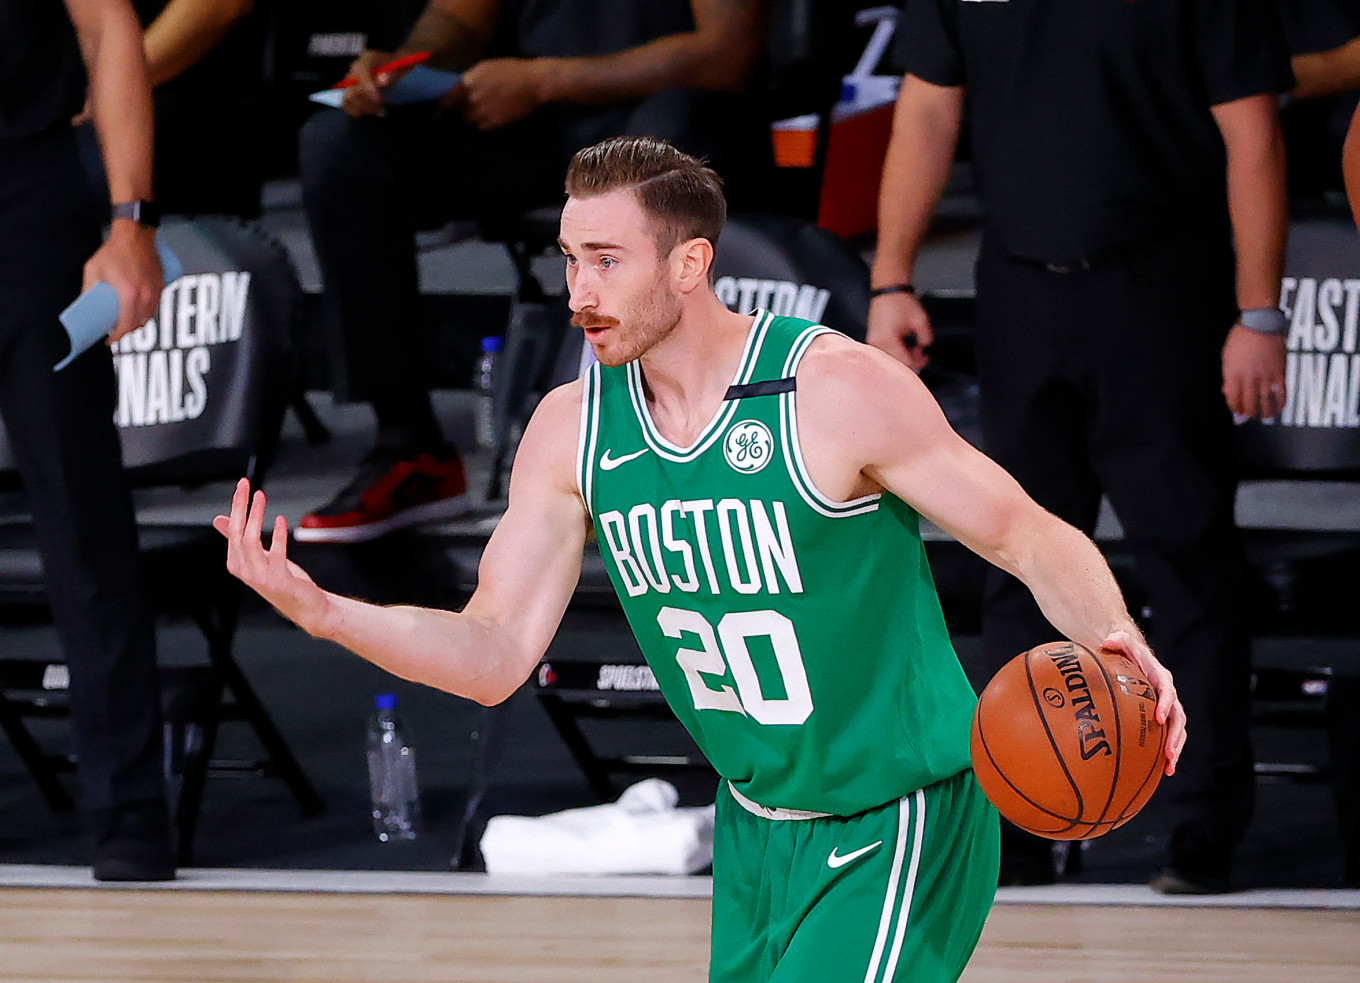 Free agent Hayward reportedly headed to Charlotte Hornets in $120m deal